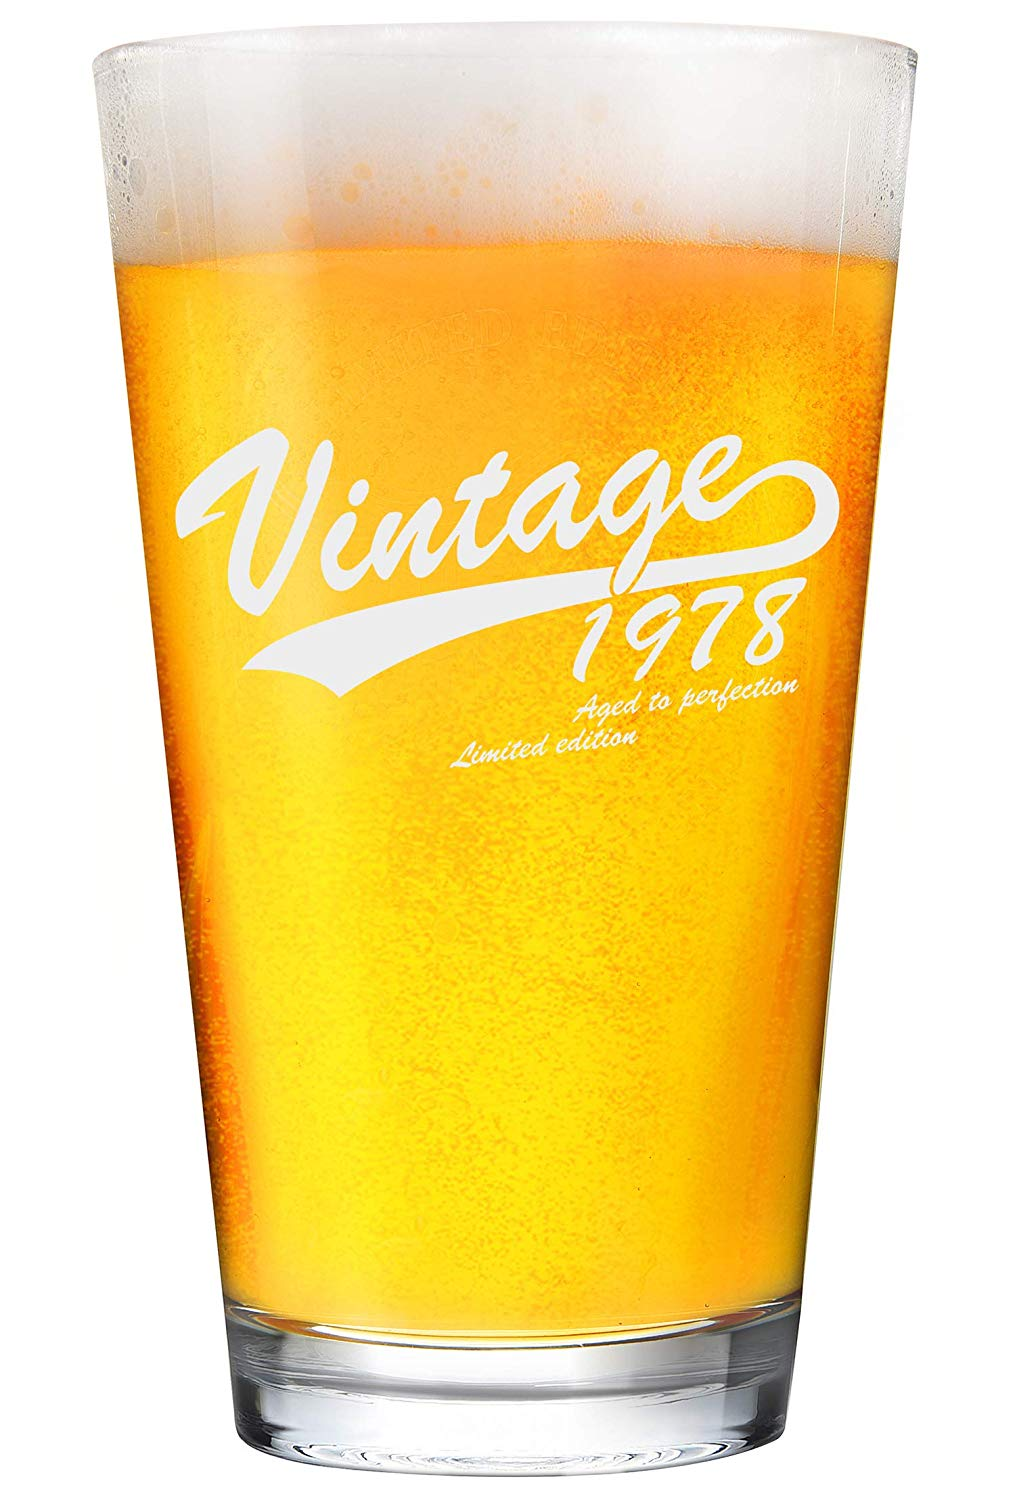 1978 40th Birthday 16oz Gifts for Women and Men Beer Glass - Funny Beer Glasses Gift for Him or Her. Cheers To Forty 40 Years - 40 Year Old Presents for Dad, Husband, Wife, Mom - IPA Mug Cup